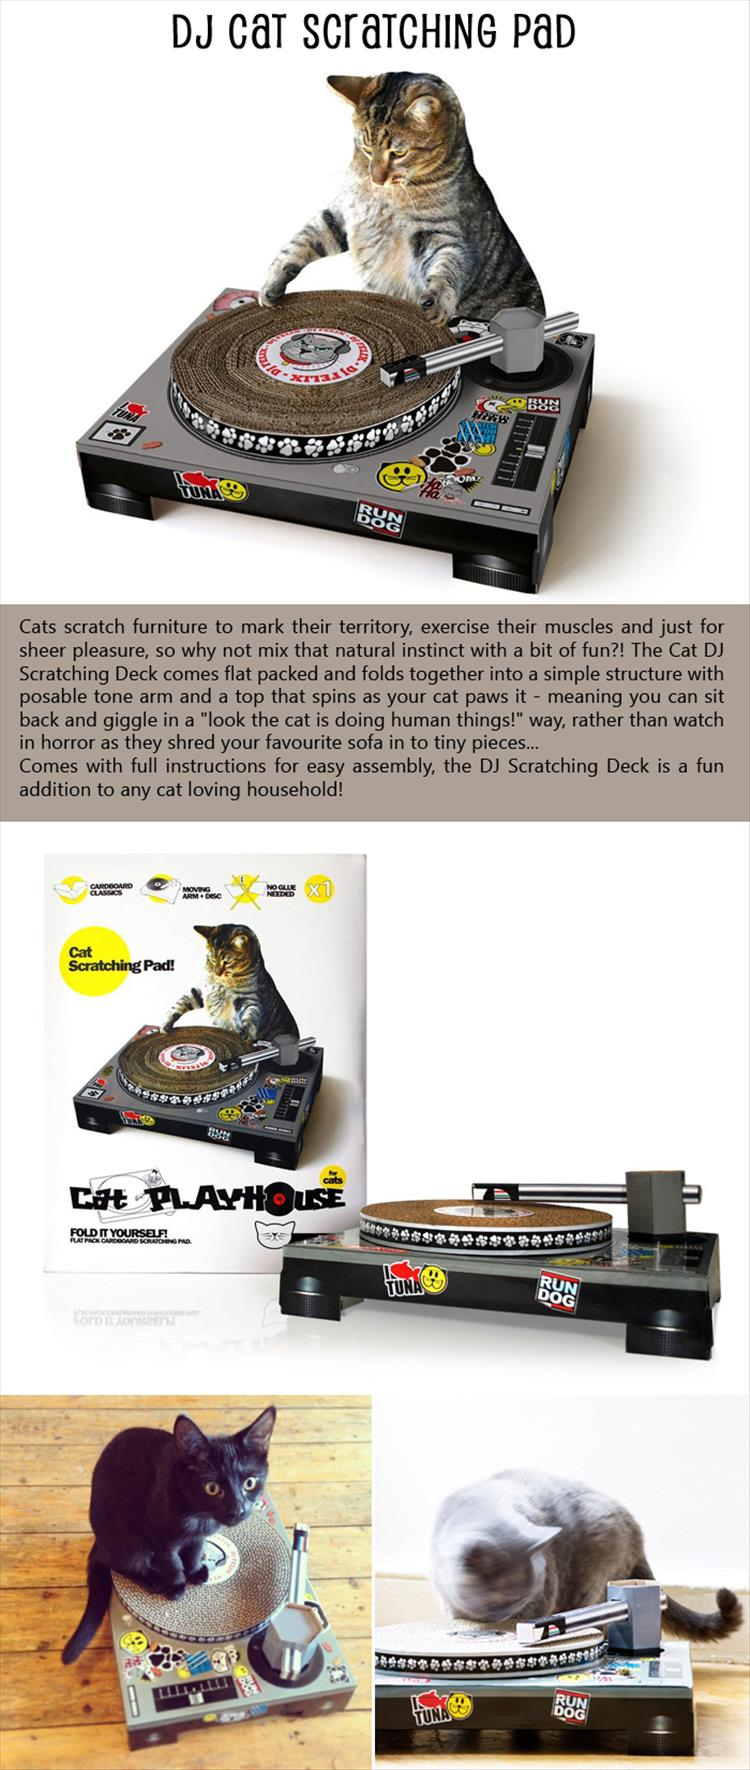 Paper Toy besides Cat DJ Scratching Deck also LEGO DJ Turntables ...